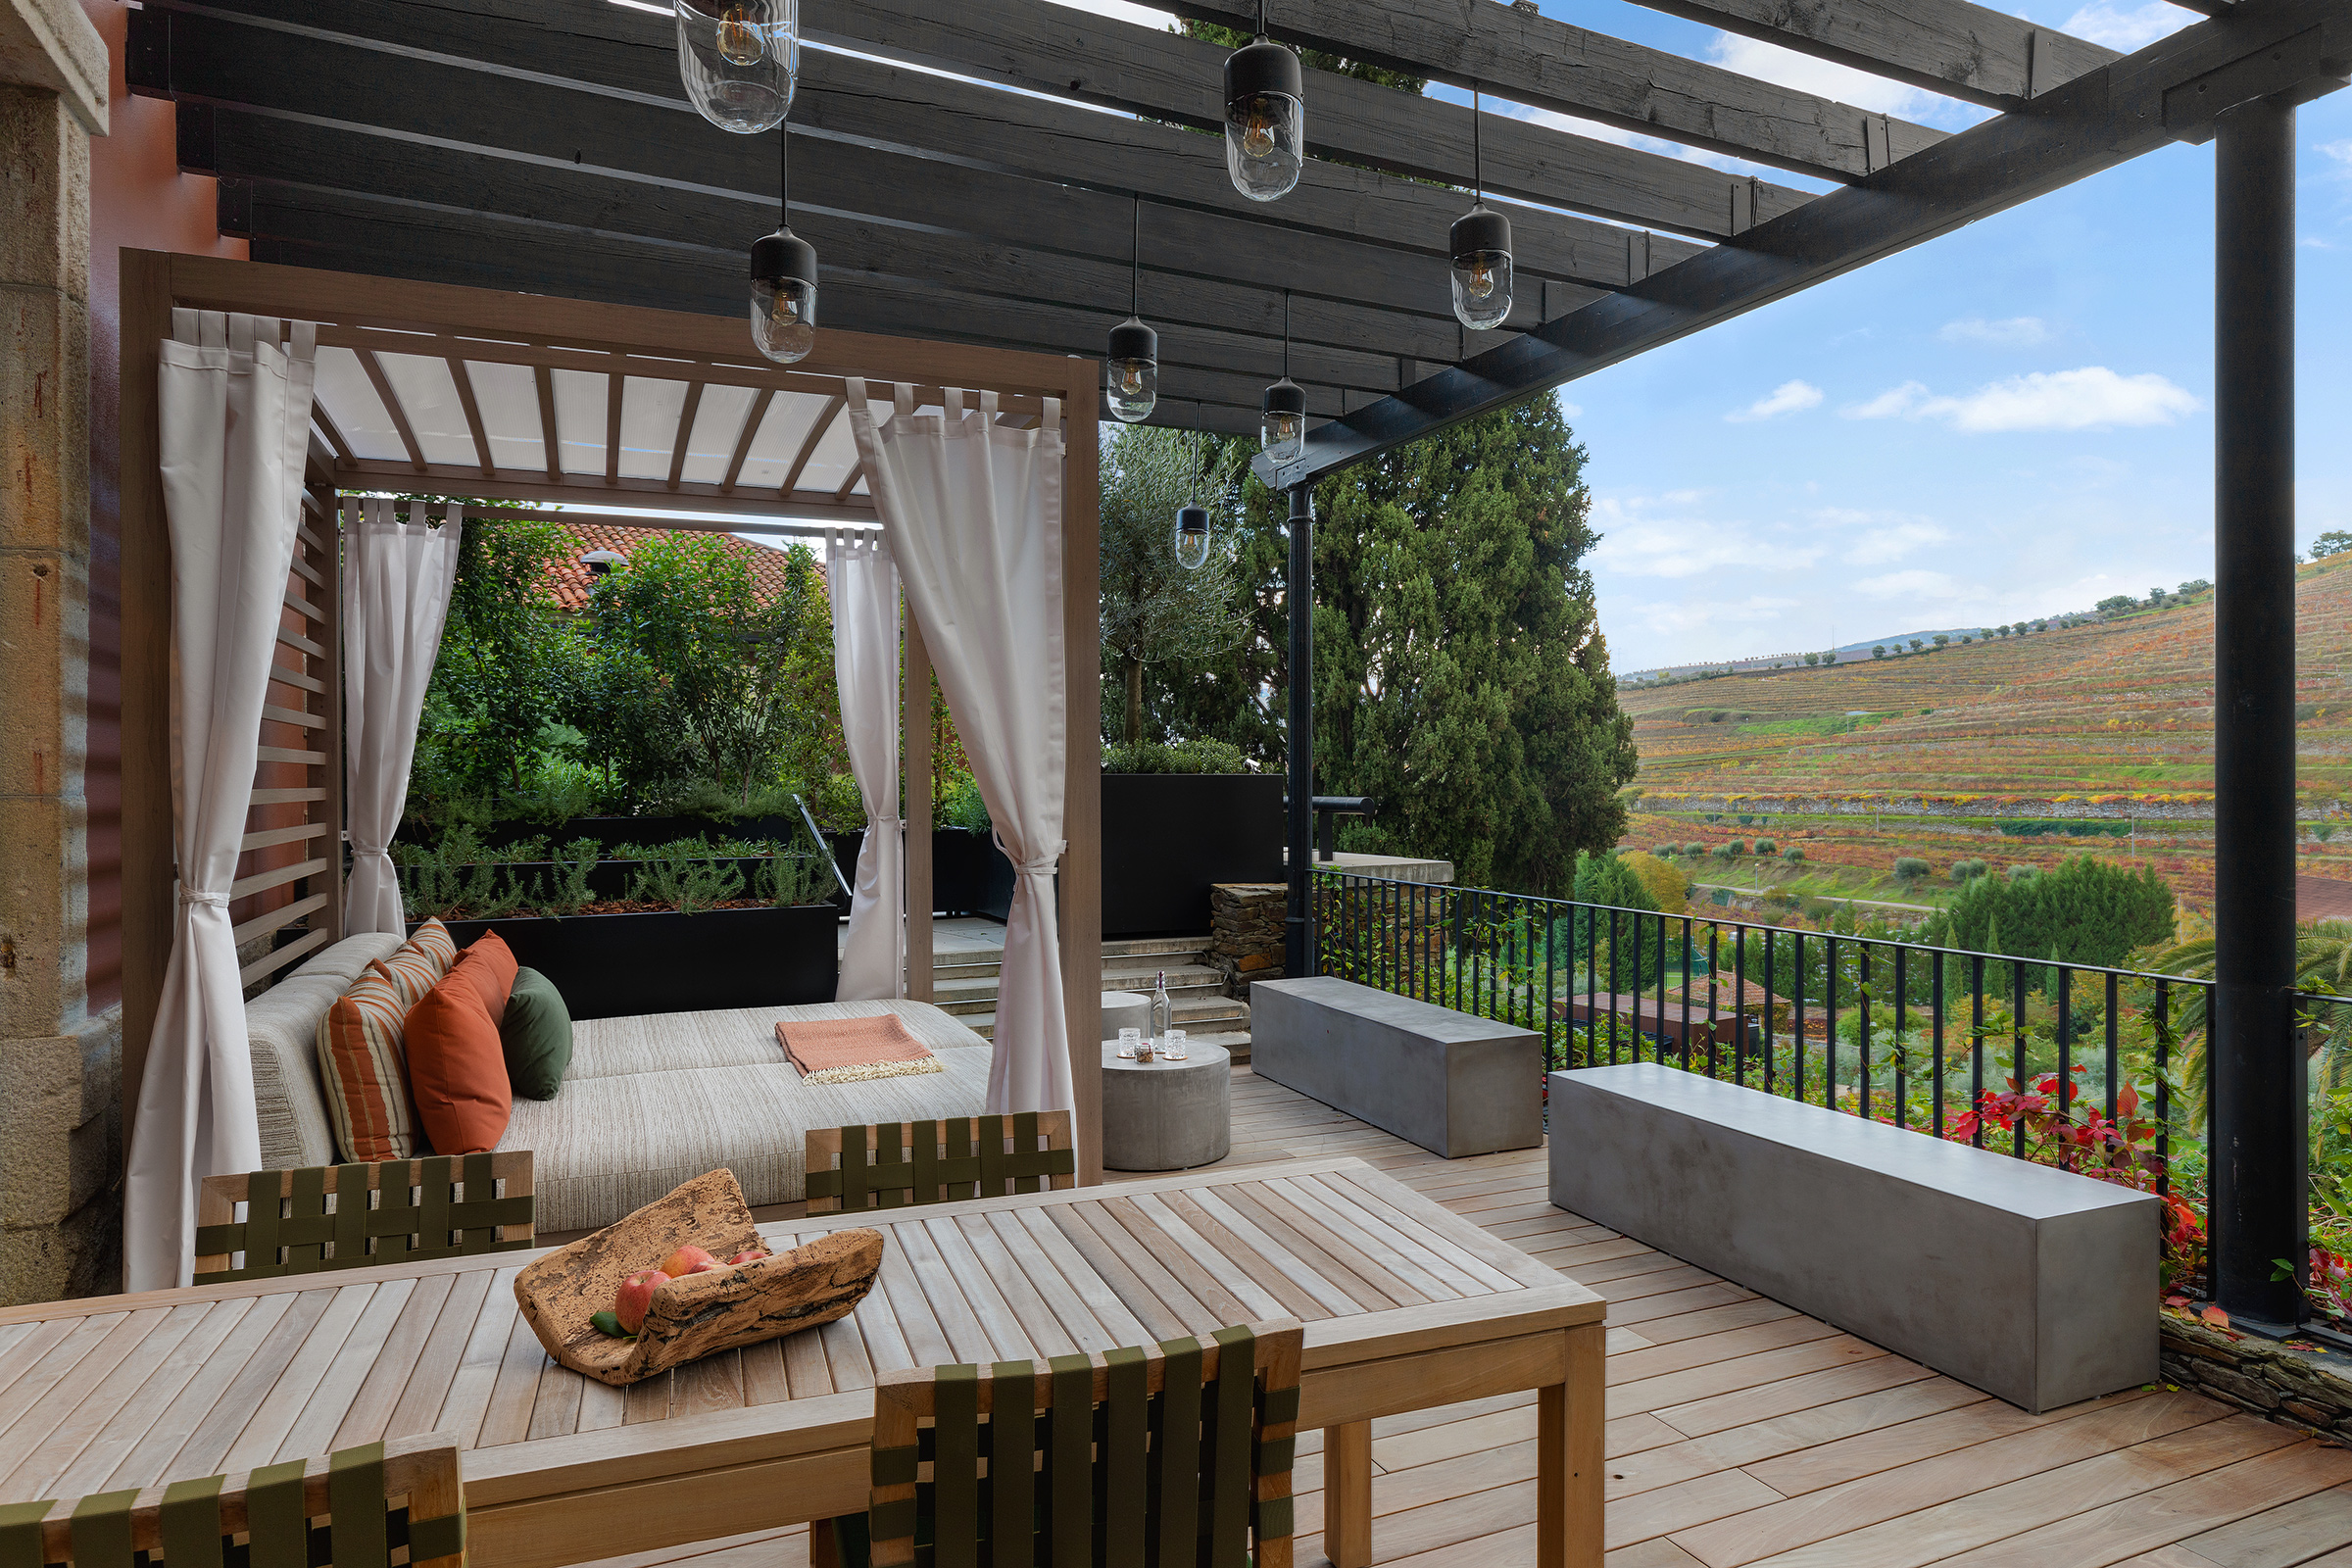 An outdoor resting spot at the Six Senses Douro Valley in Portugal